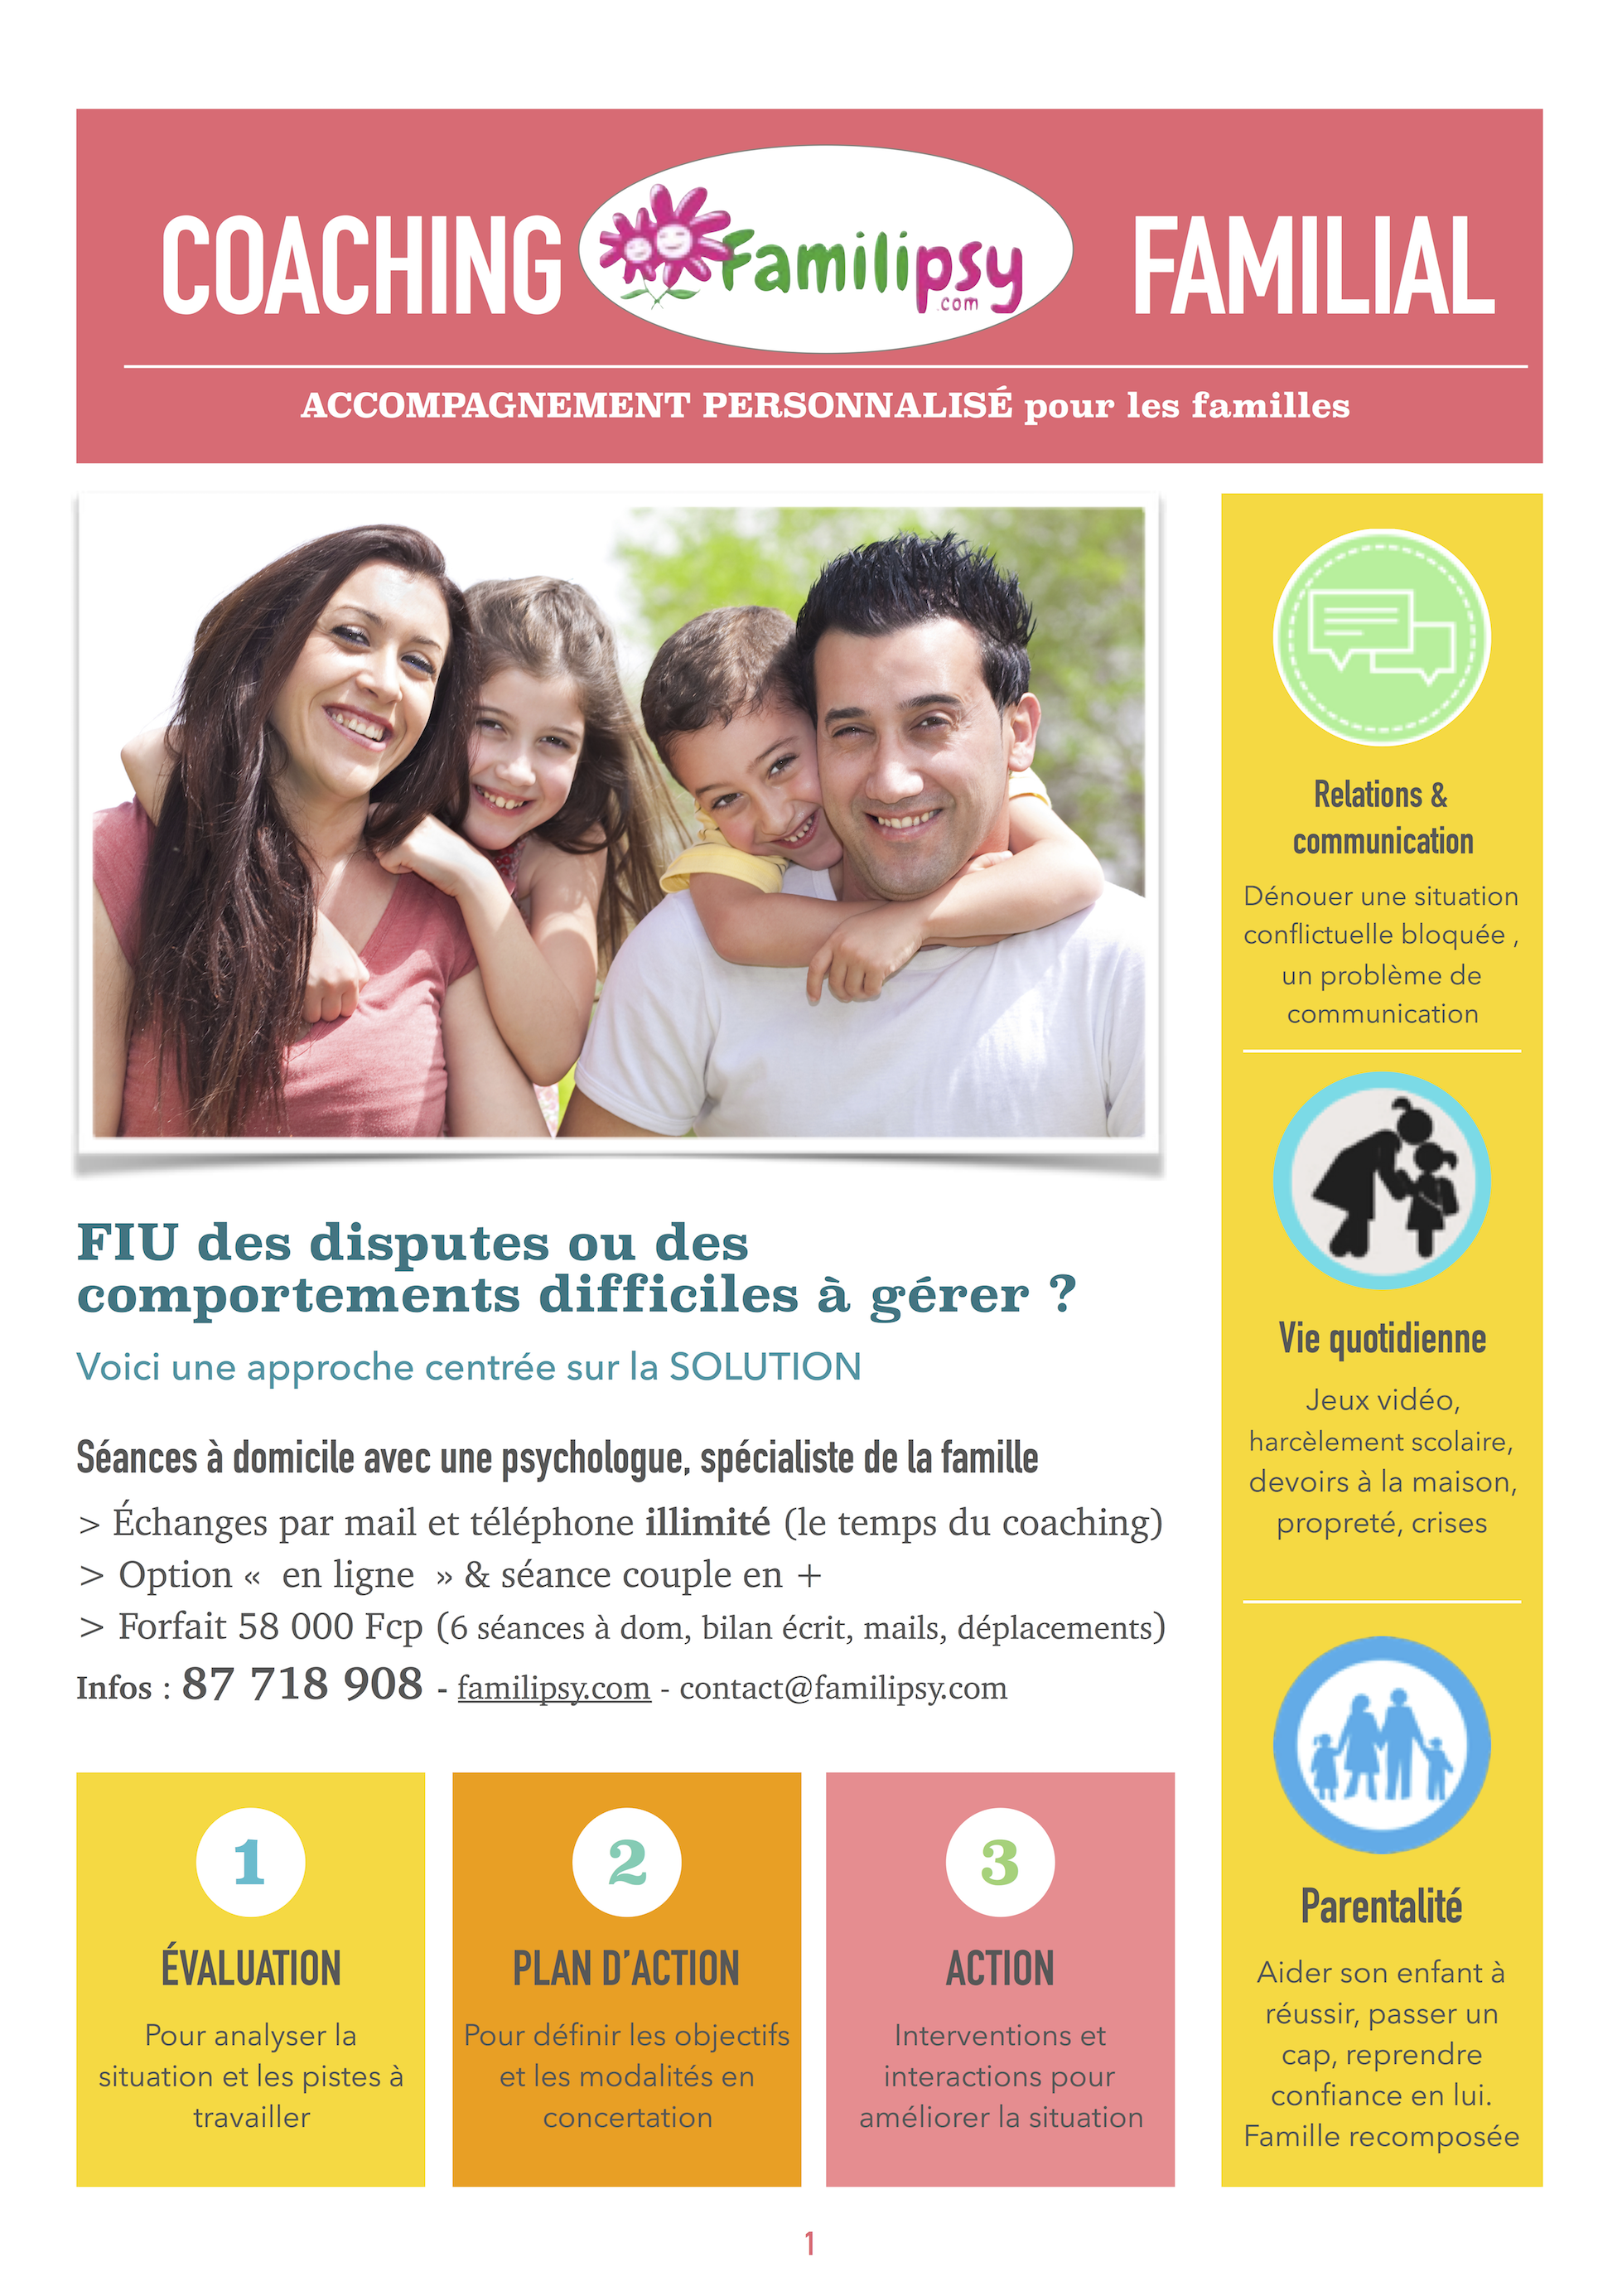 COACHING FAMILIAL PERSONNALISE